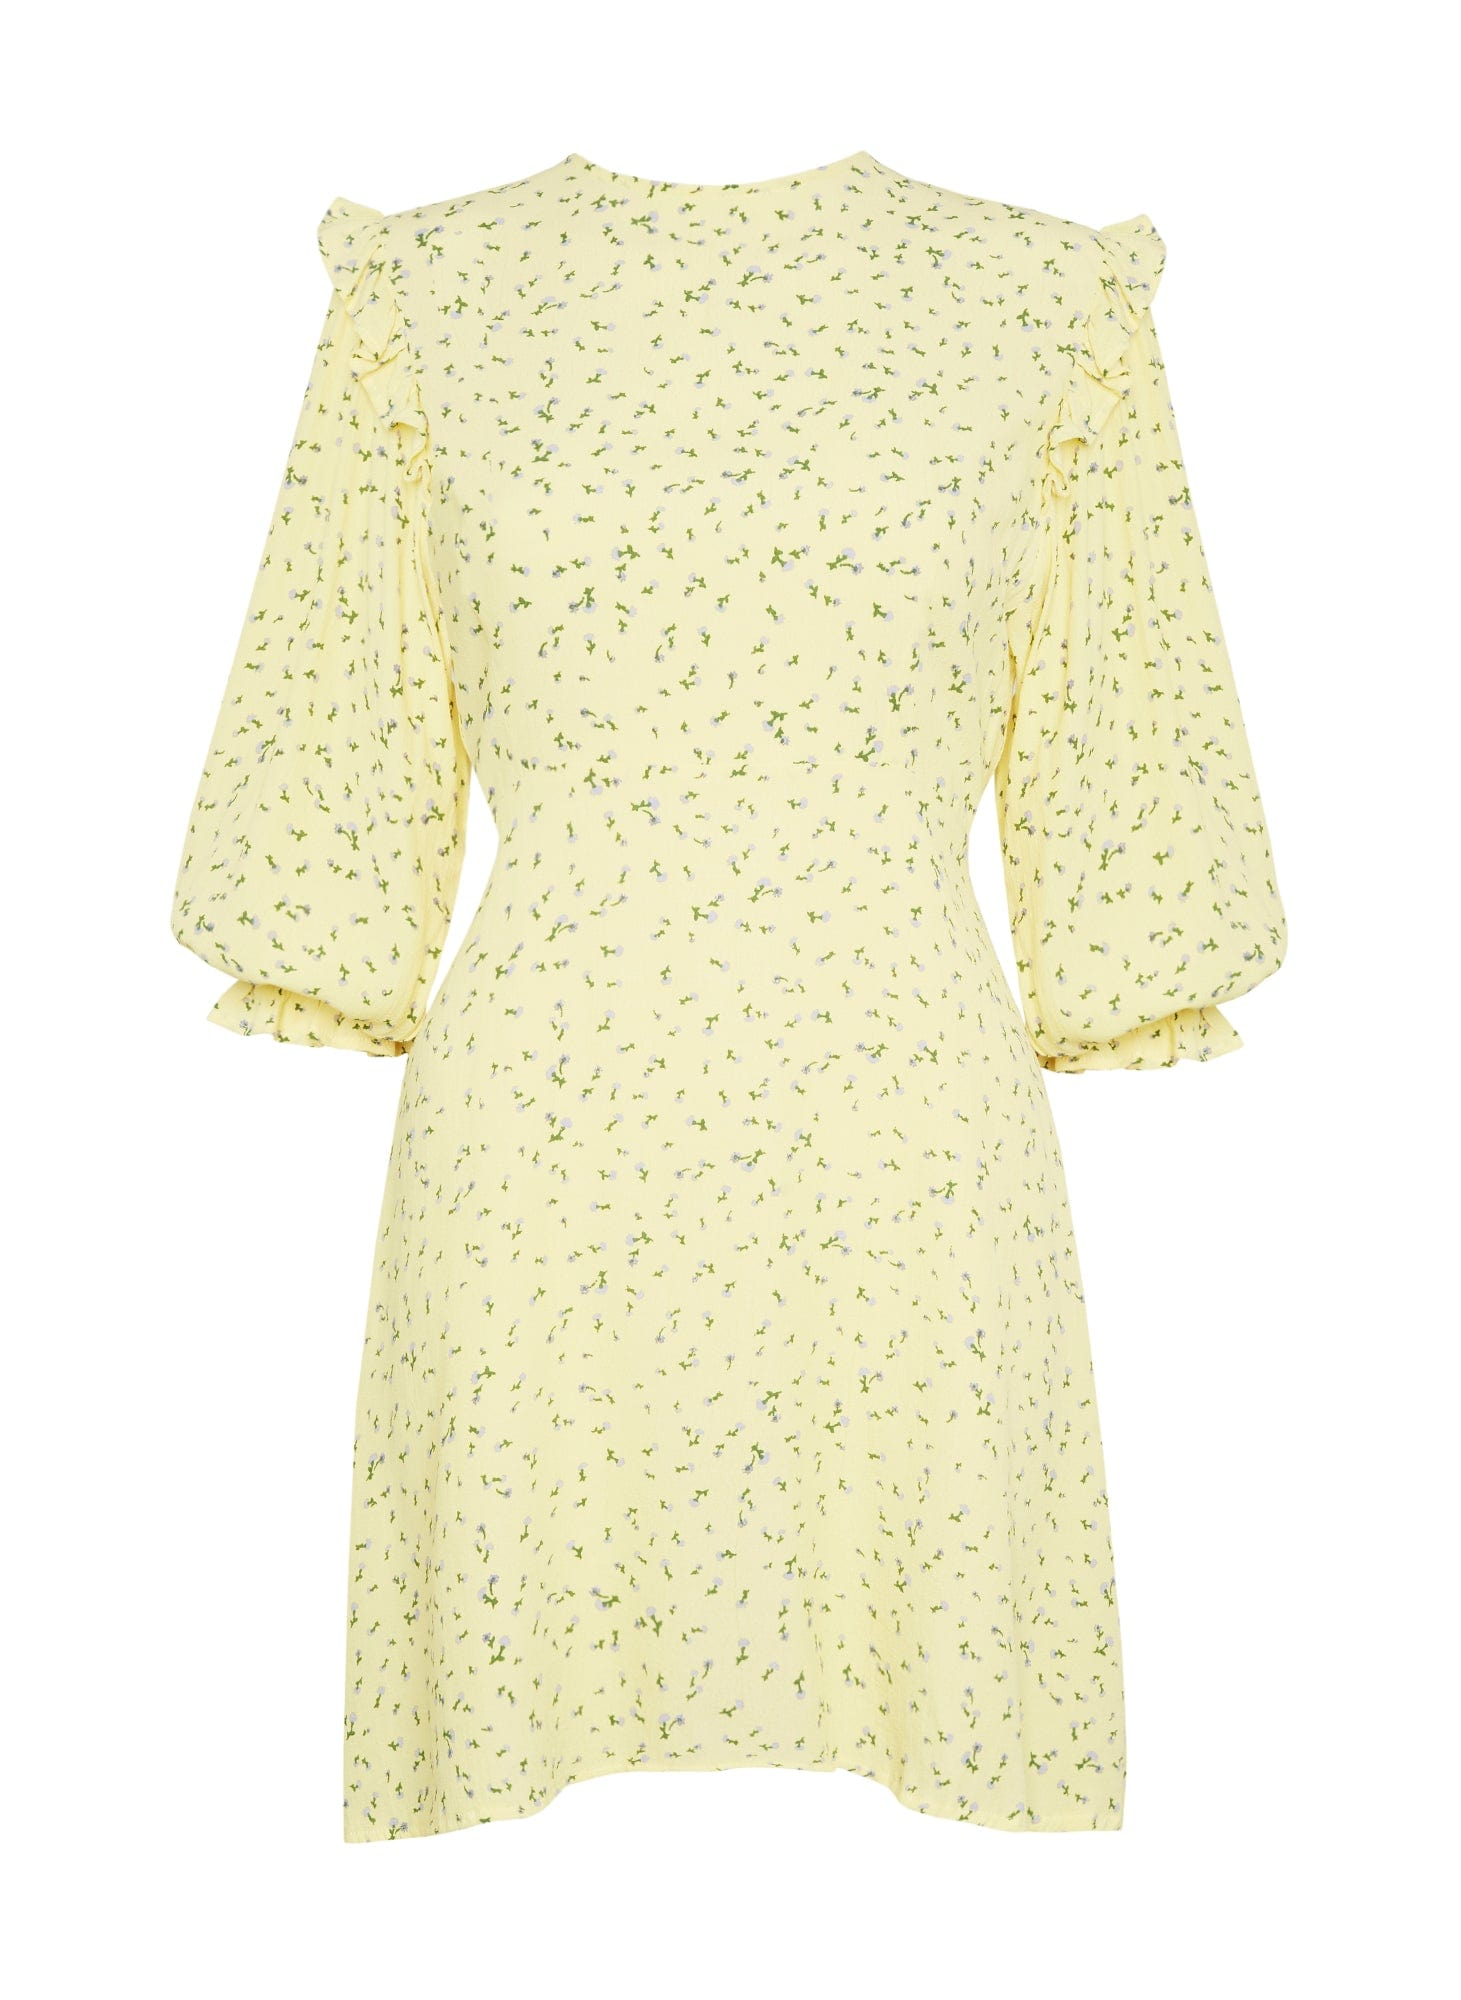 LA FICA FLORAL PRINT - EDWINA MINI DRESS